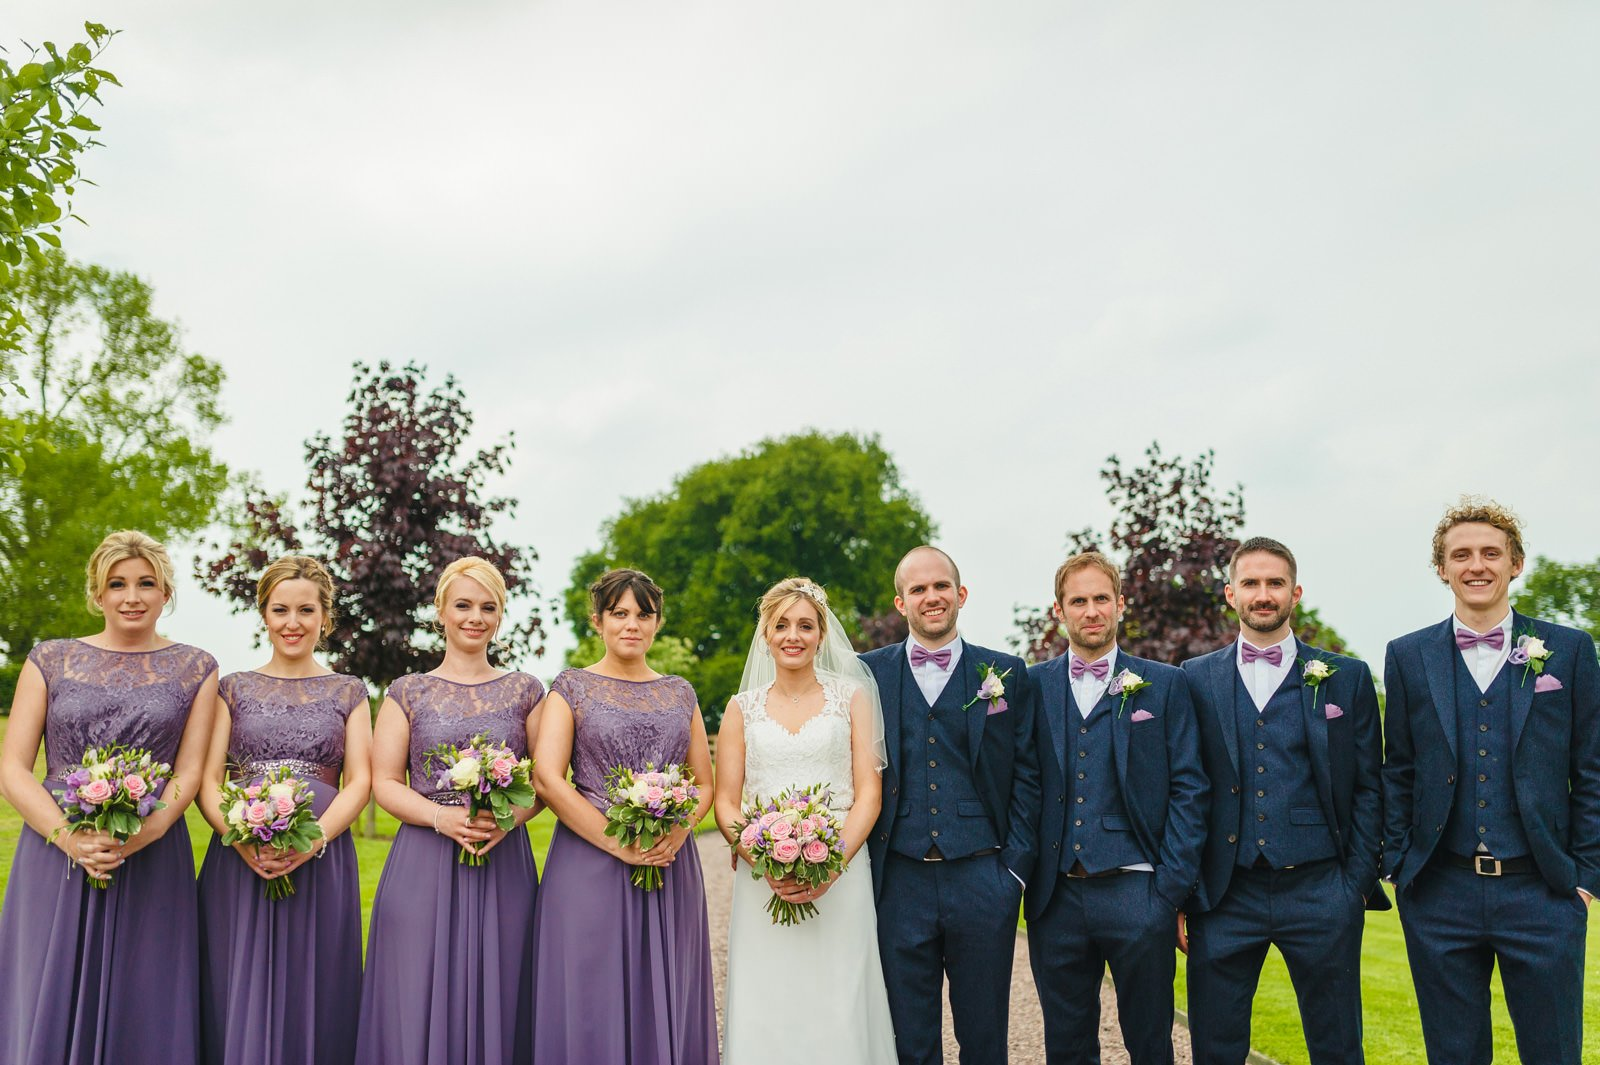 millers of netley wedding 73 - Millers Of Netley wedding, Dorrington, Shrewsbury | Emma + Ben